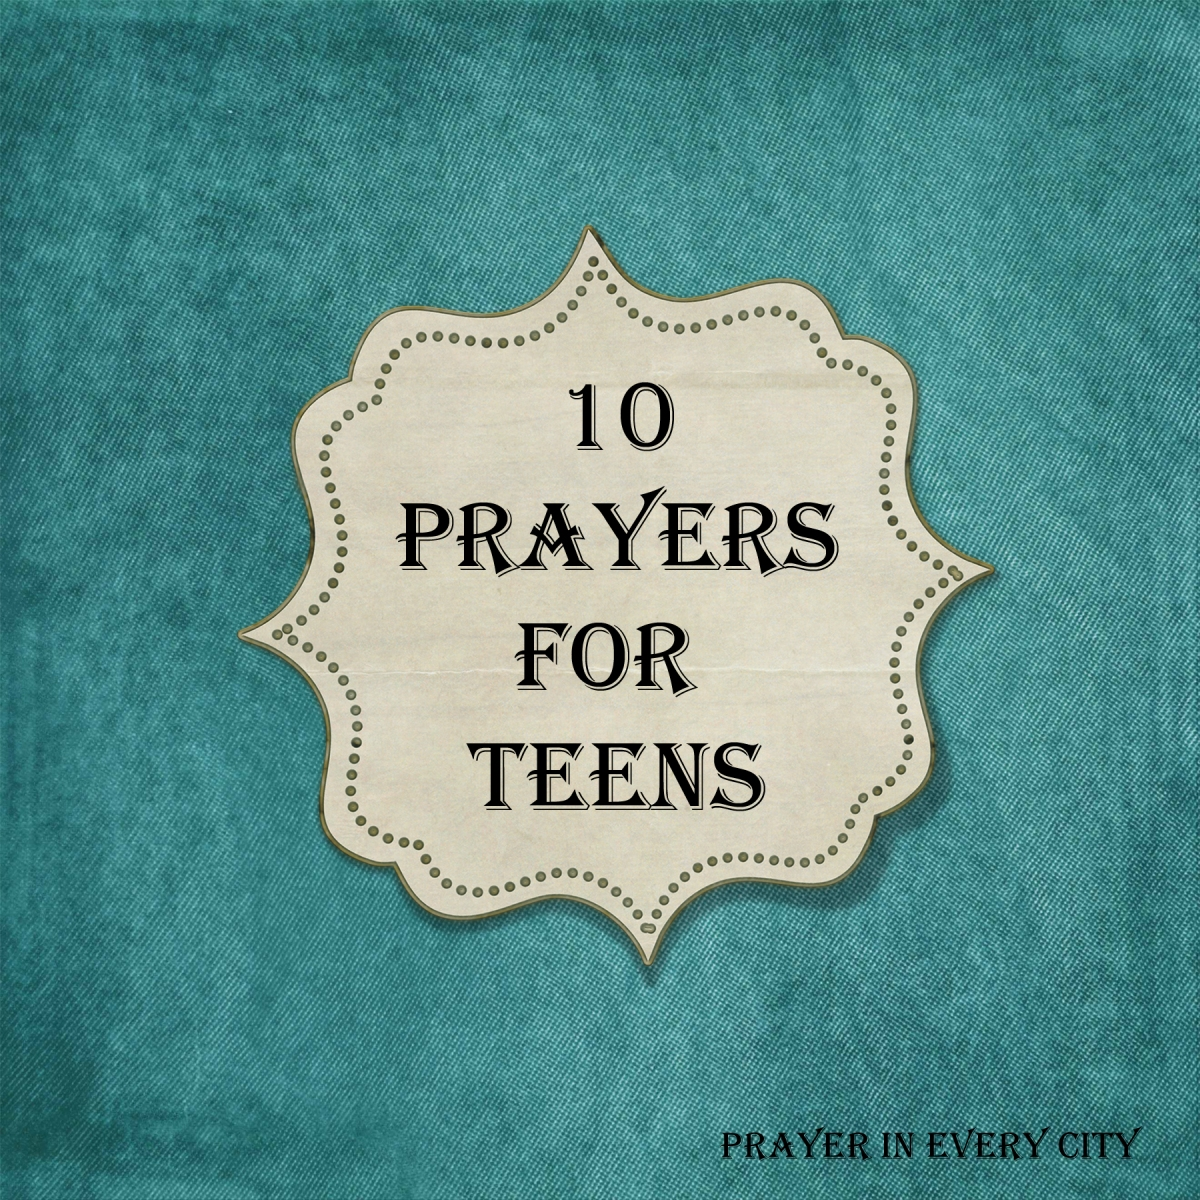 10 Prayers for Teens